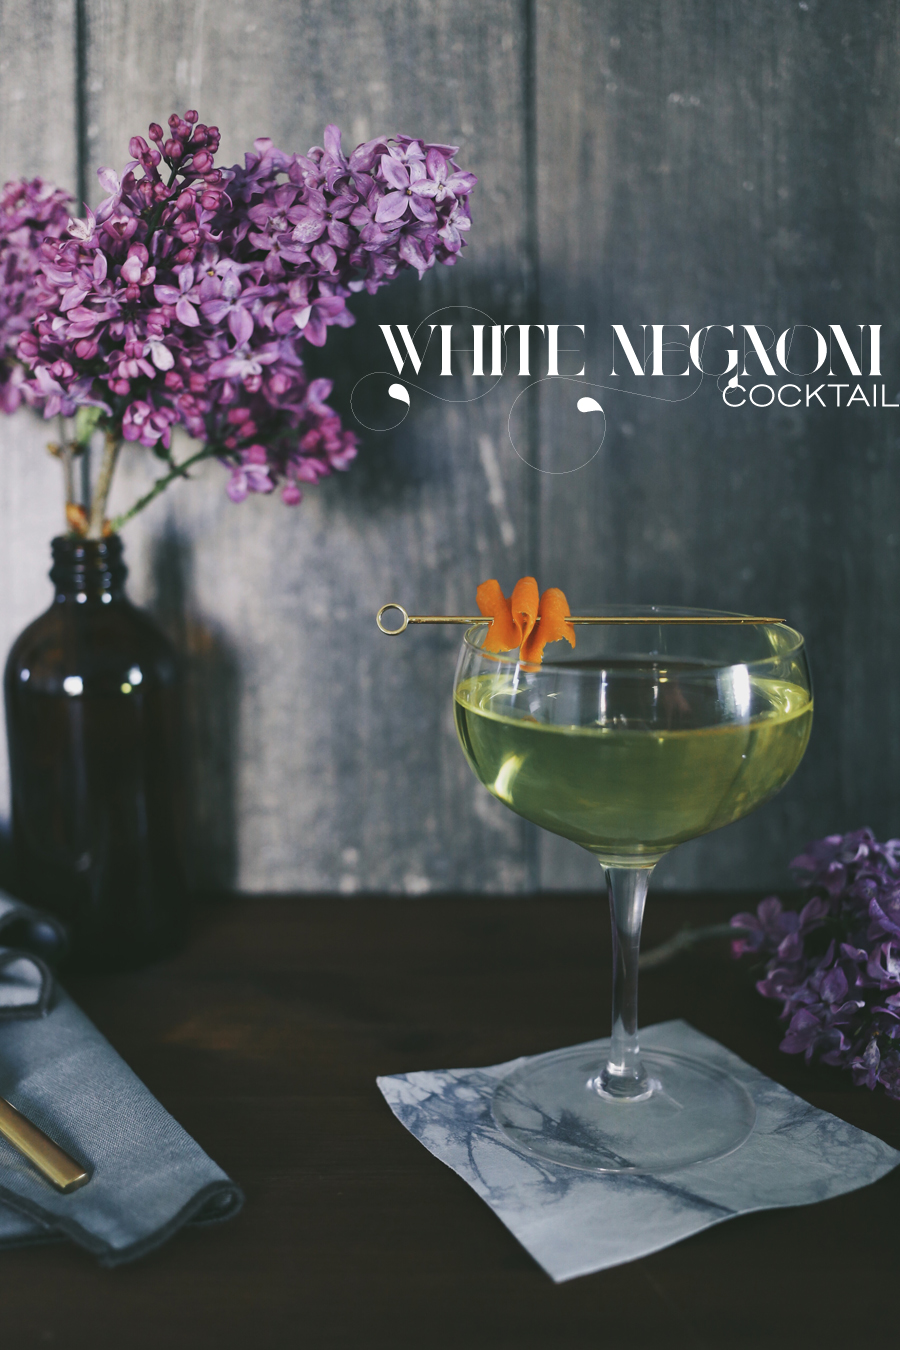 White Negroni Cocktail | Dine X Design